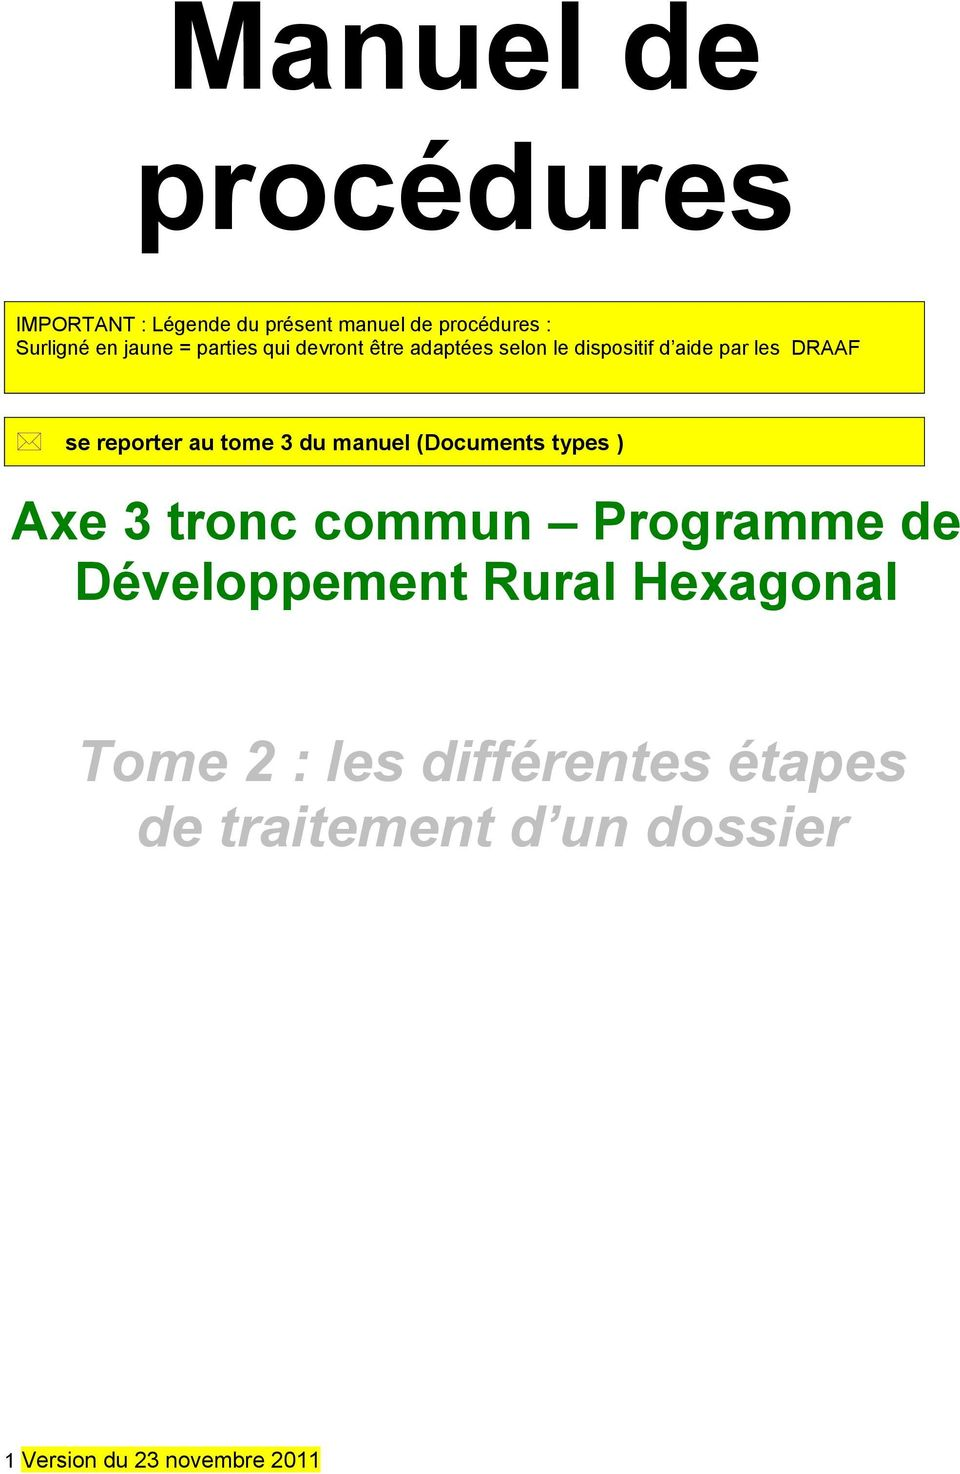 tome 3 du manuel (Documents types ) Axe 3 tronc commun Programme de Développement Rural